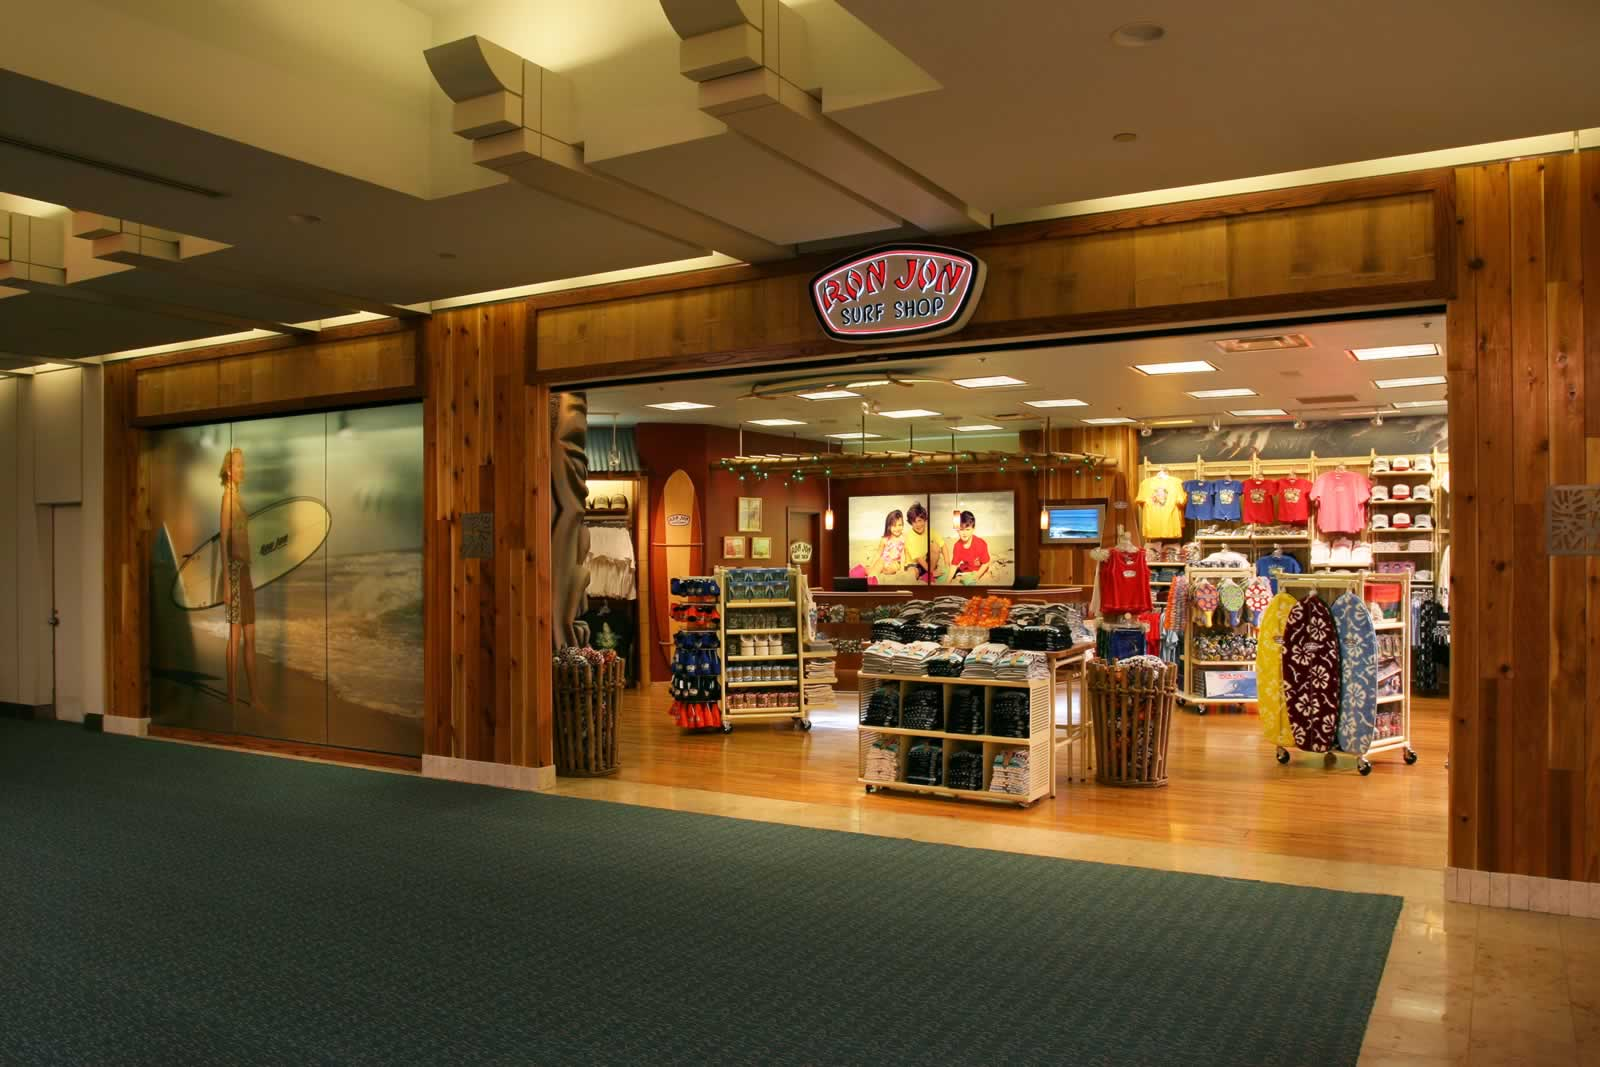 ron jon s surf shop versus hilo Ron jon surf shop 15% off apparel for men and women  sale sun diego up to 63% off hurley professor backpack sale thalia surf shop 75% off sale sale  discounts and promotion codes as ranked by the users of retailmenotcom to use a coupon simply click the coupon code then enter the code during the store's checkout process.